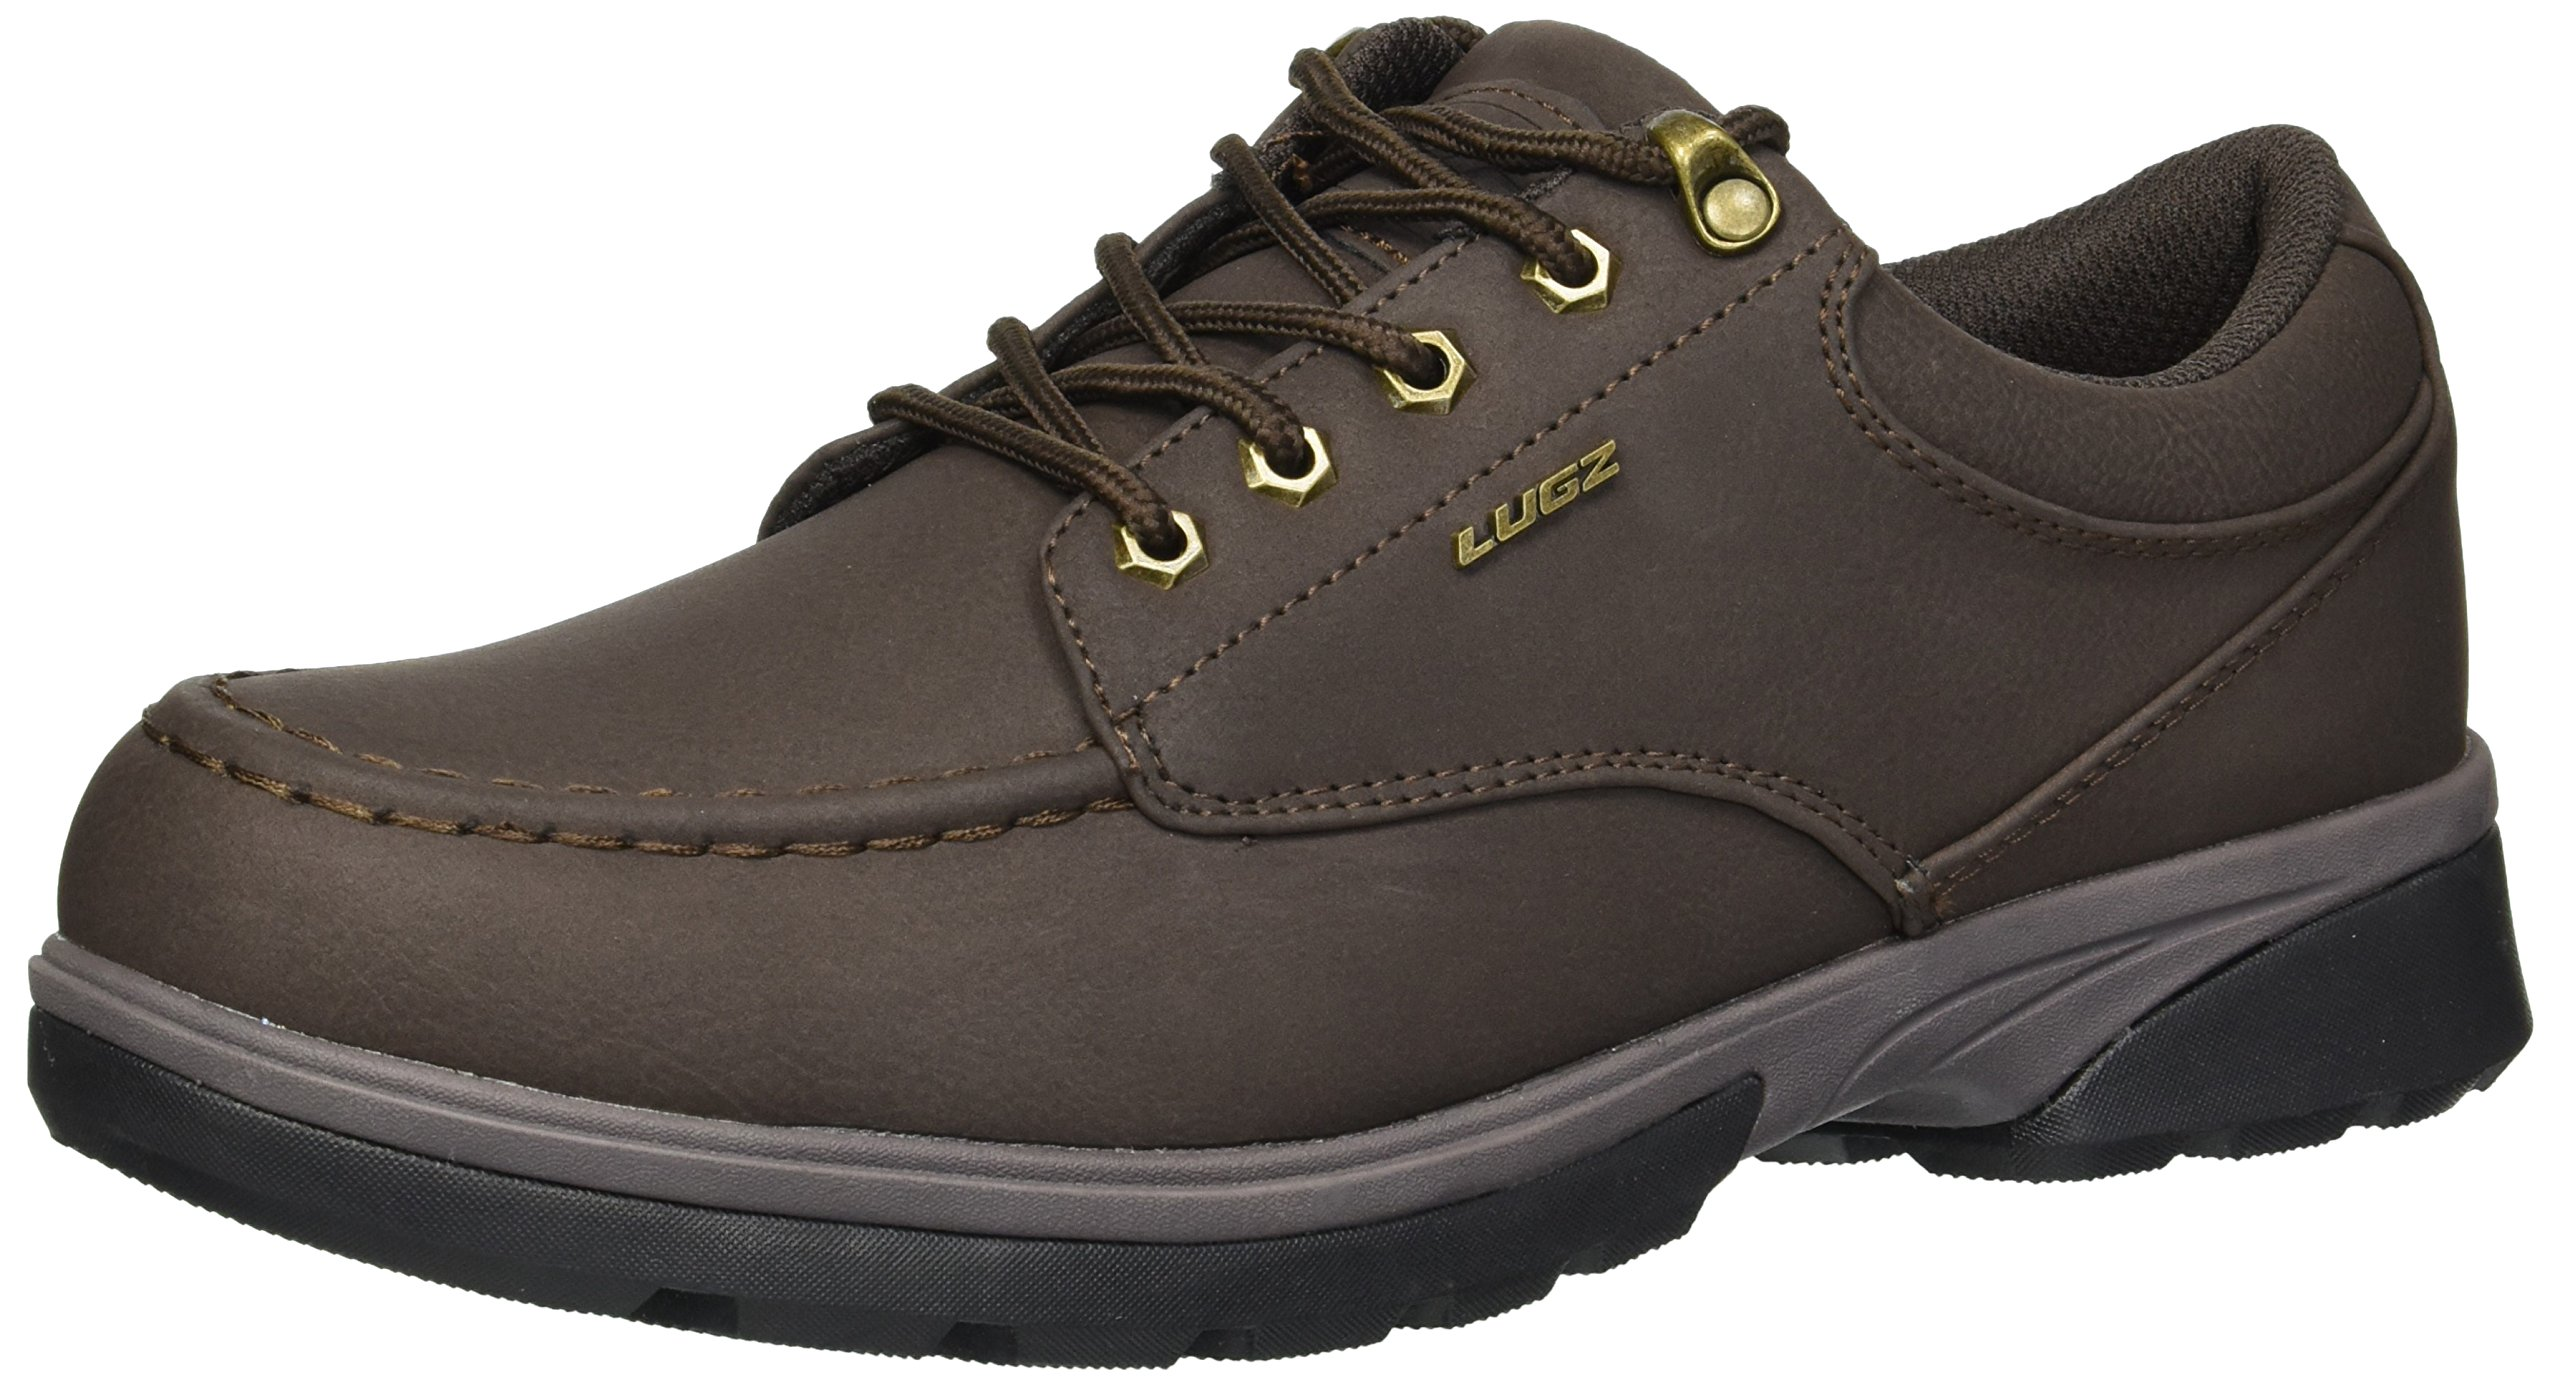 Lugz Men's Stack LO Oxford Boot, Dark Brown/Brown/Black, 9 D US